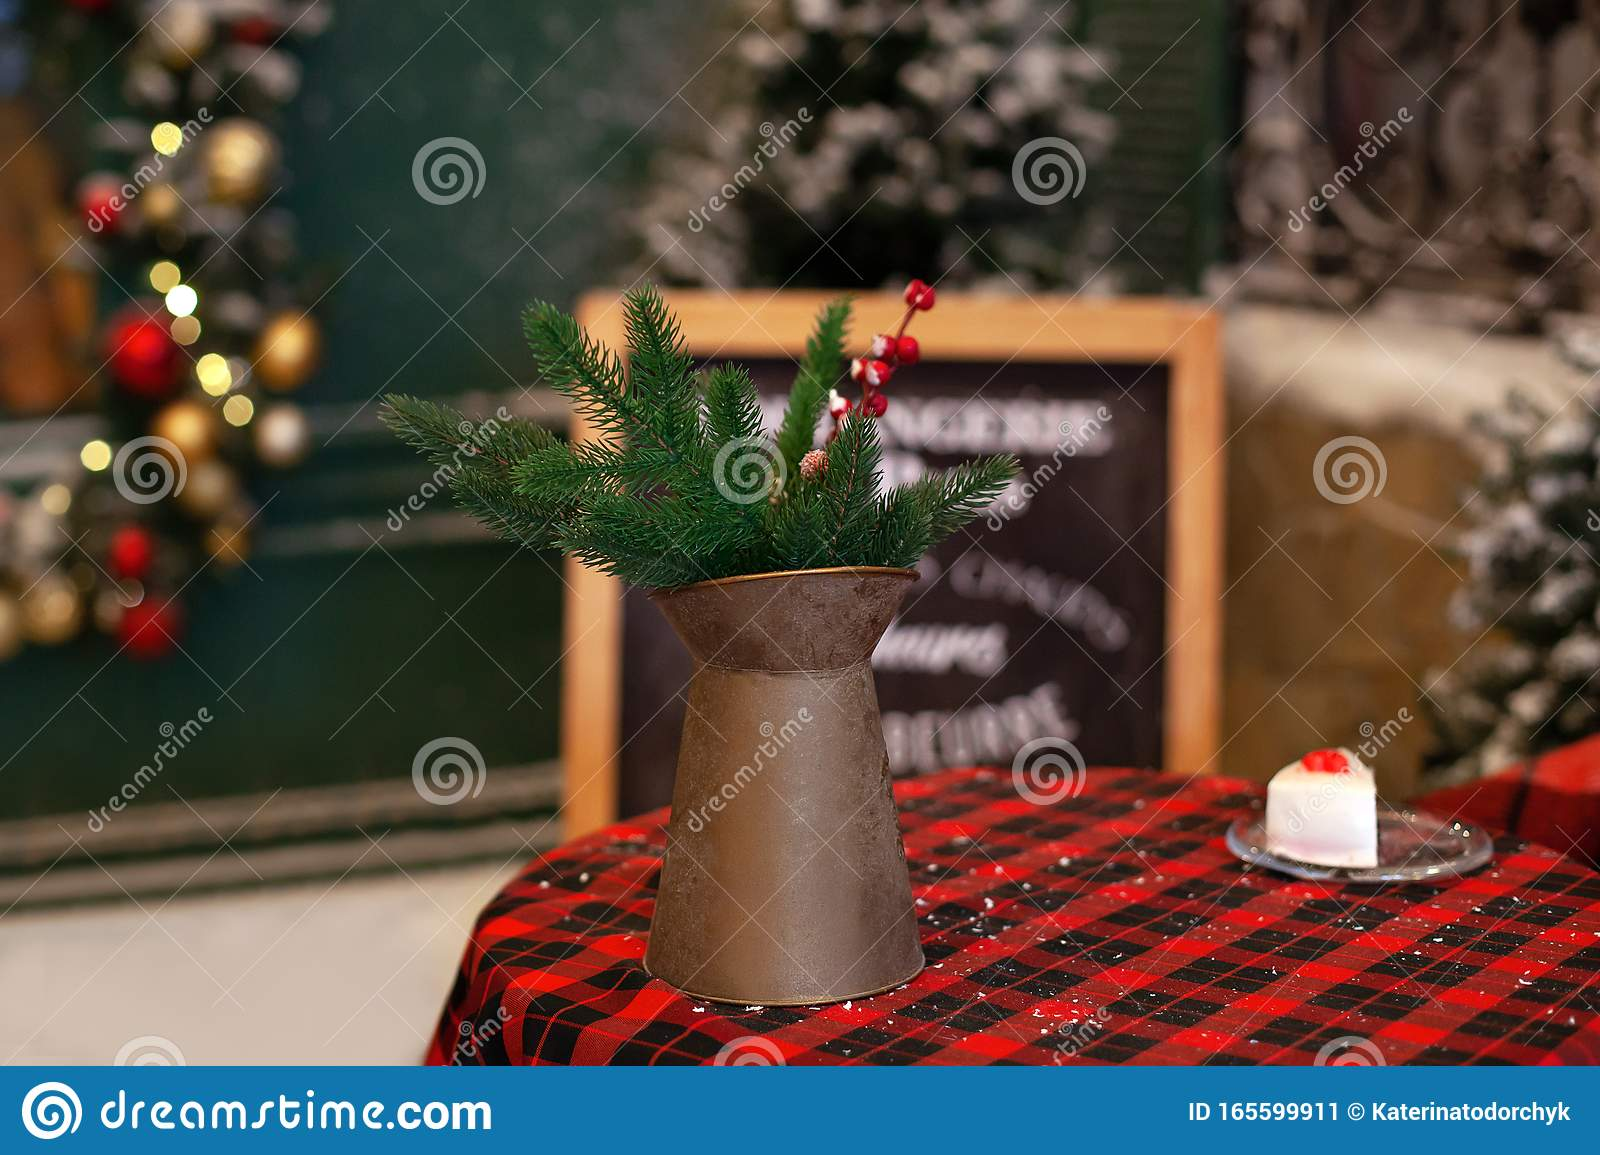 A Copper Jug And Fir Branches Stand On Table Christmas Decorations Stock Image Image Of Antique Decoration 165599911